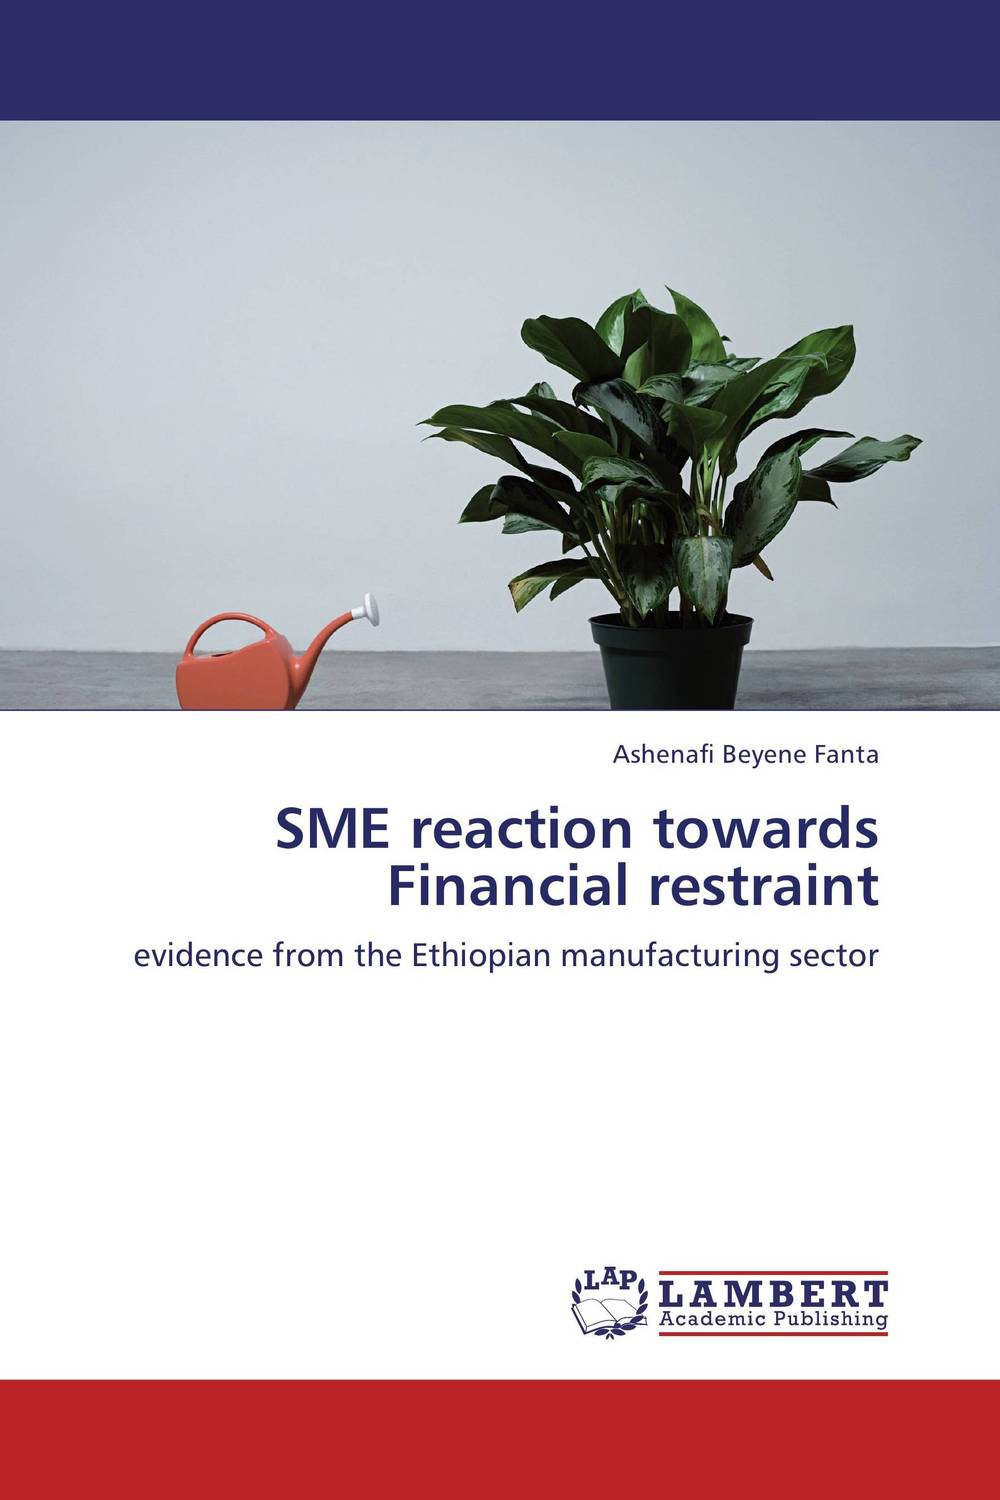 SME reaction towards Financial restraint kazi rifat ahmed simu akter and kushal roy alternative development loom by reason of natural changes